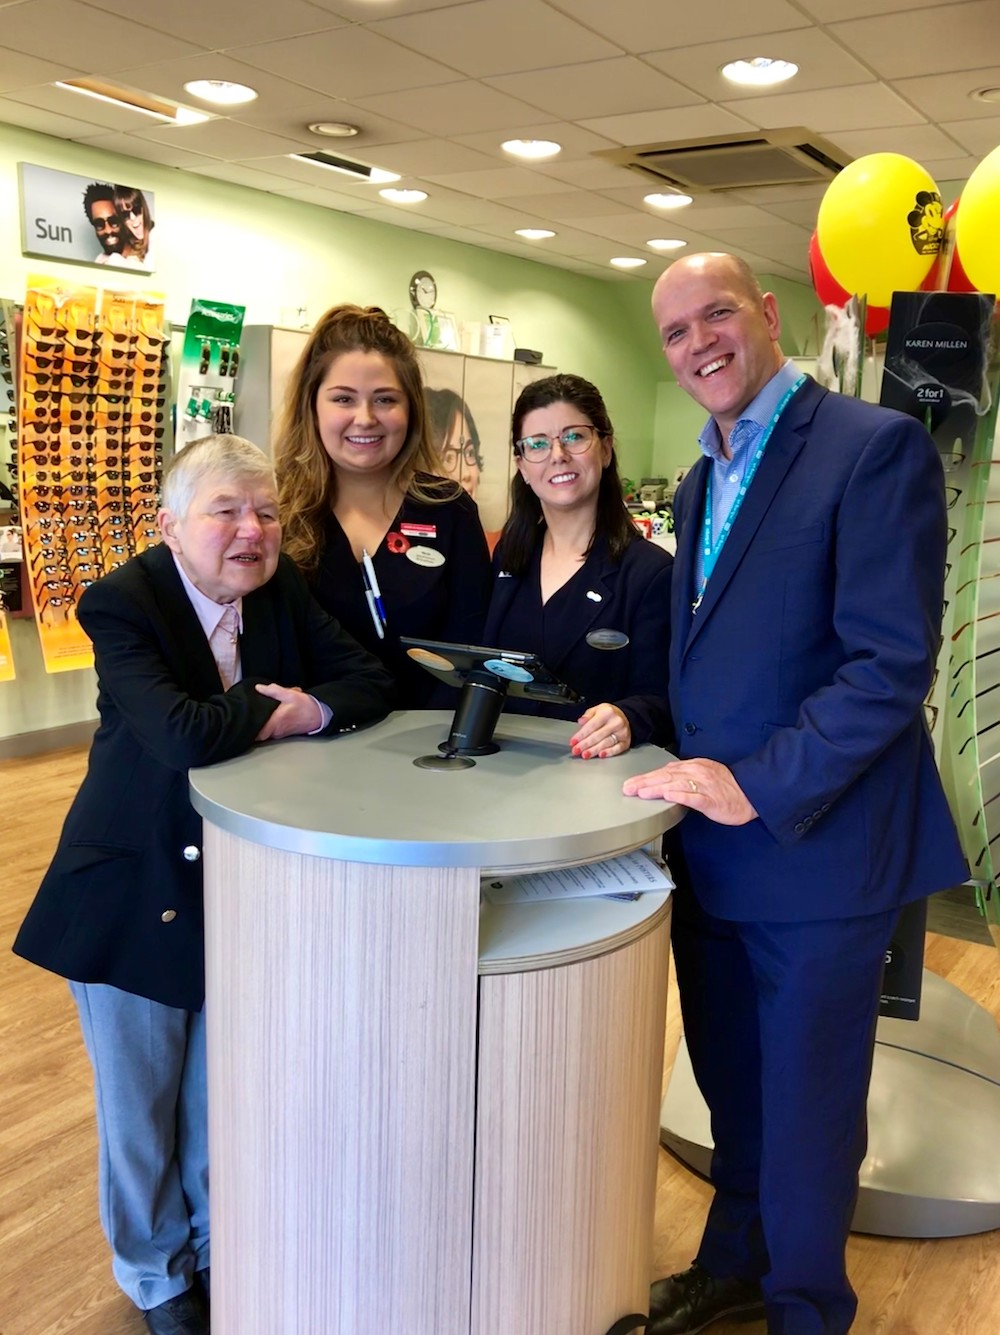 Specsavers staff and RNIB representatives pose in the Musselburgh store